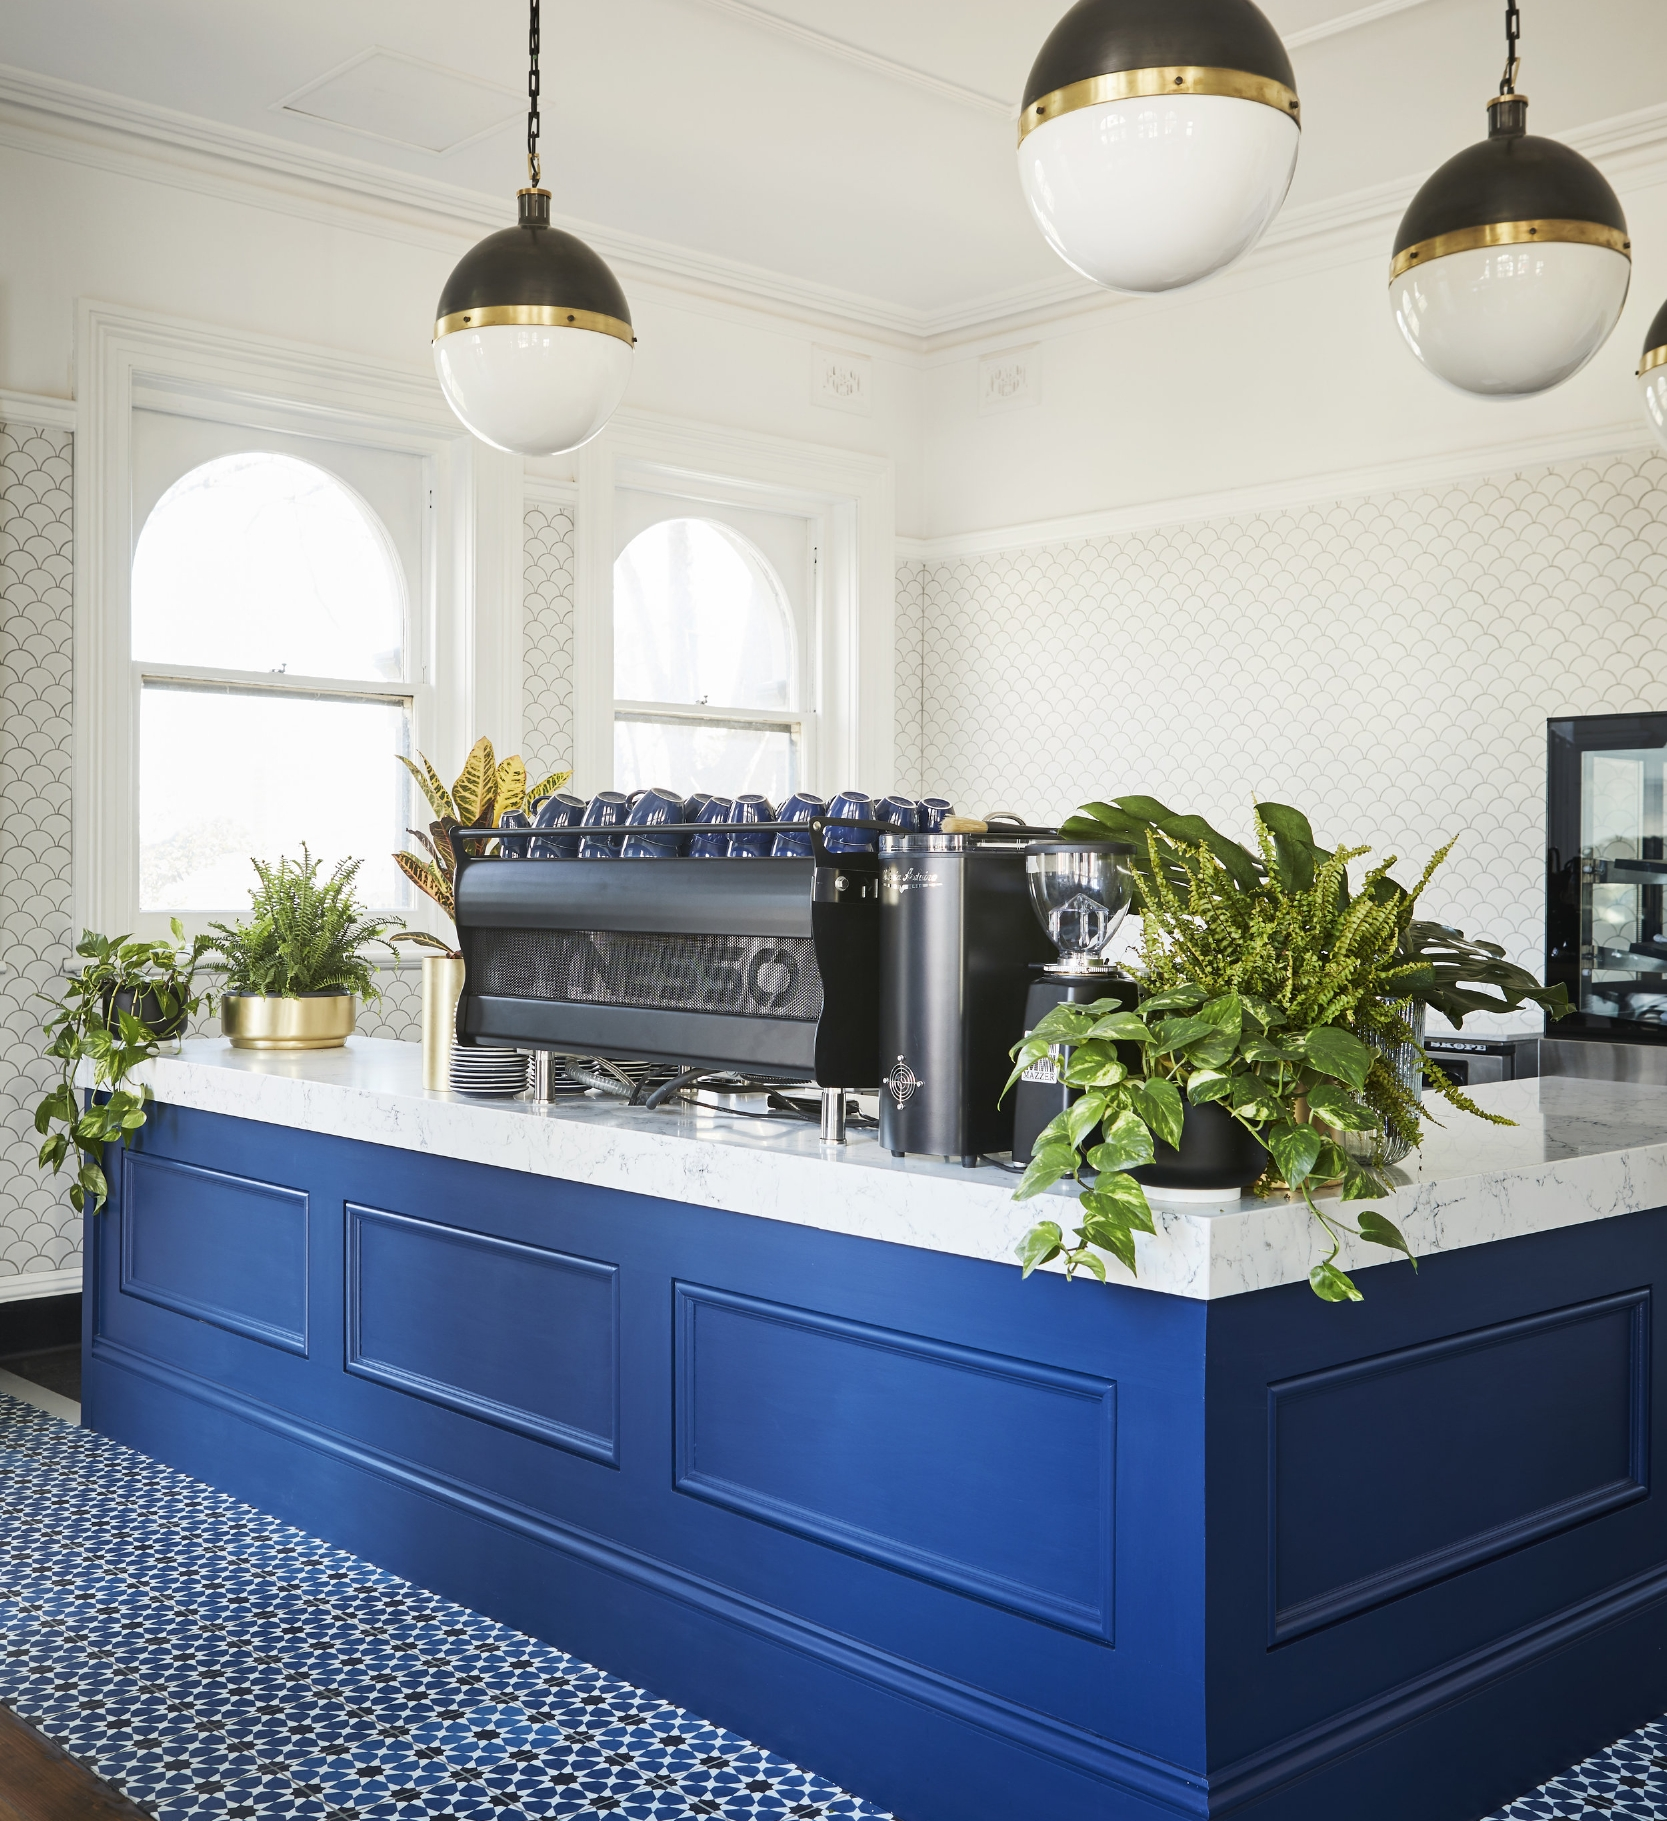 POST OFFICE CAFE: DESIGN+FITOUT